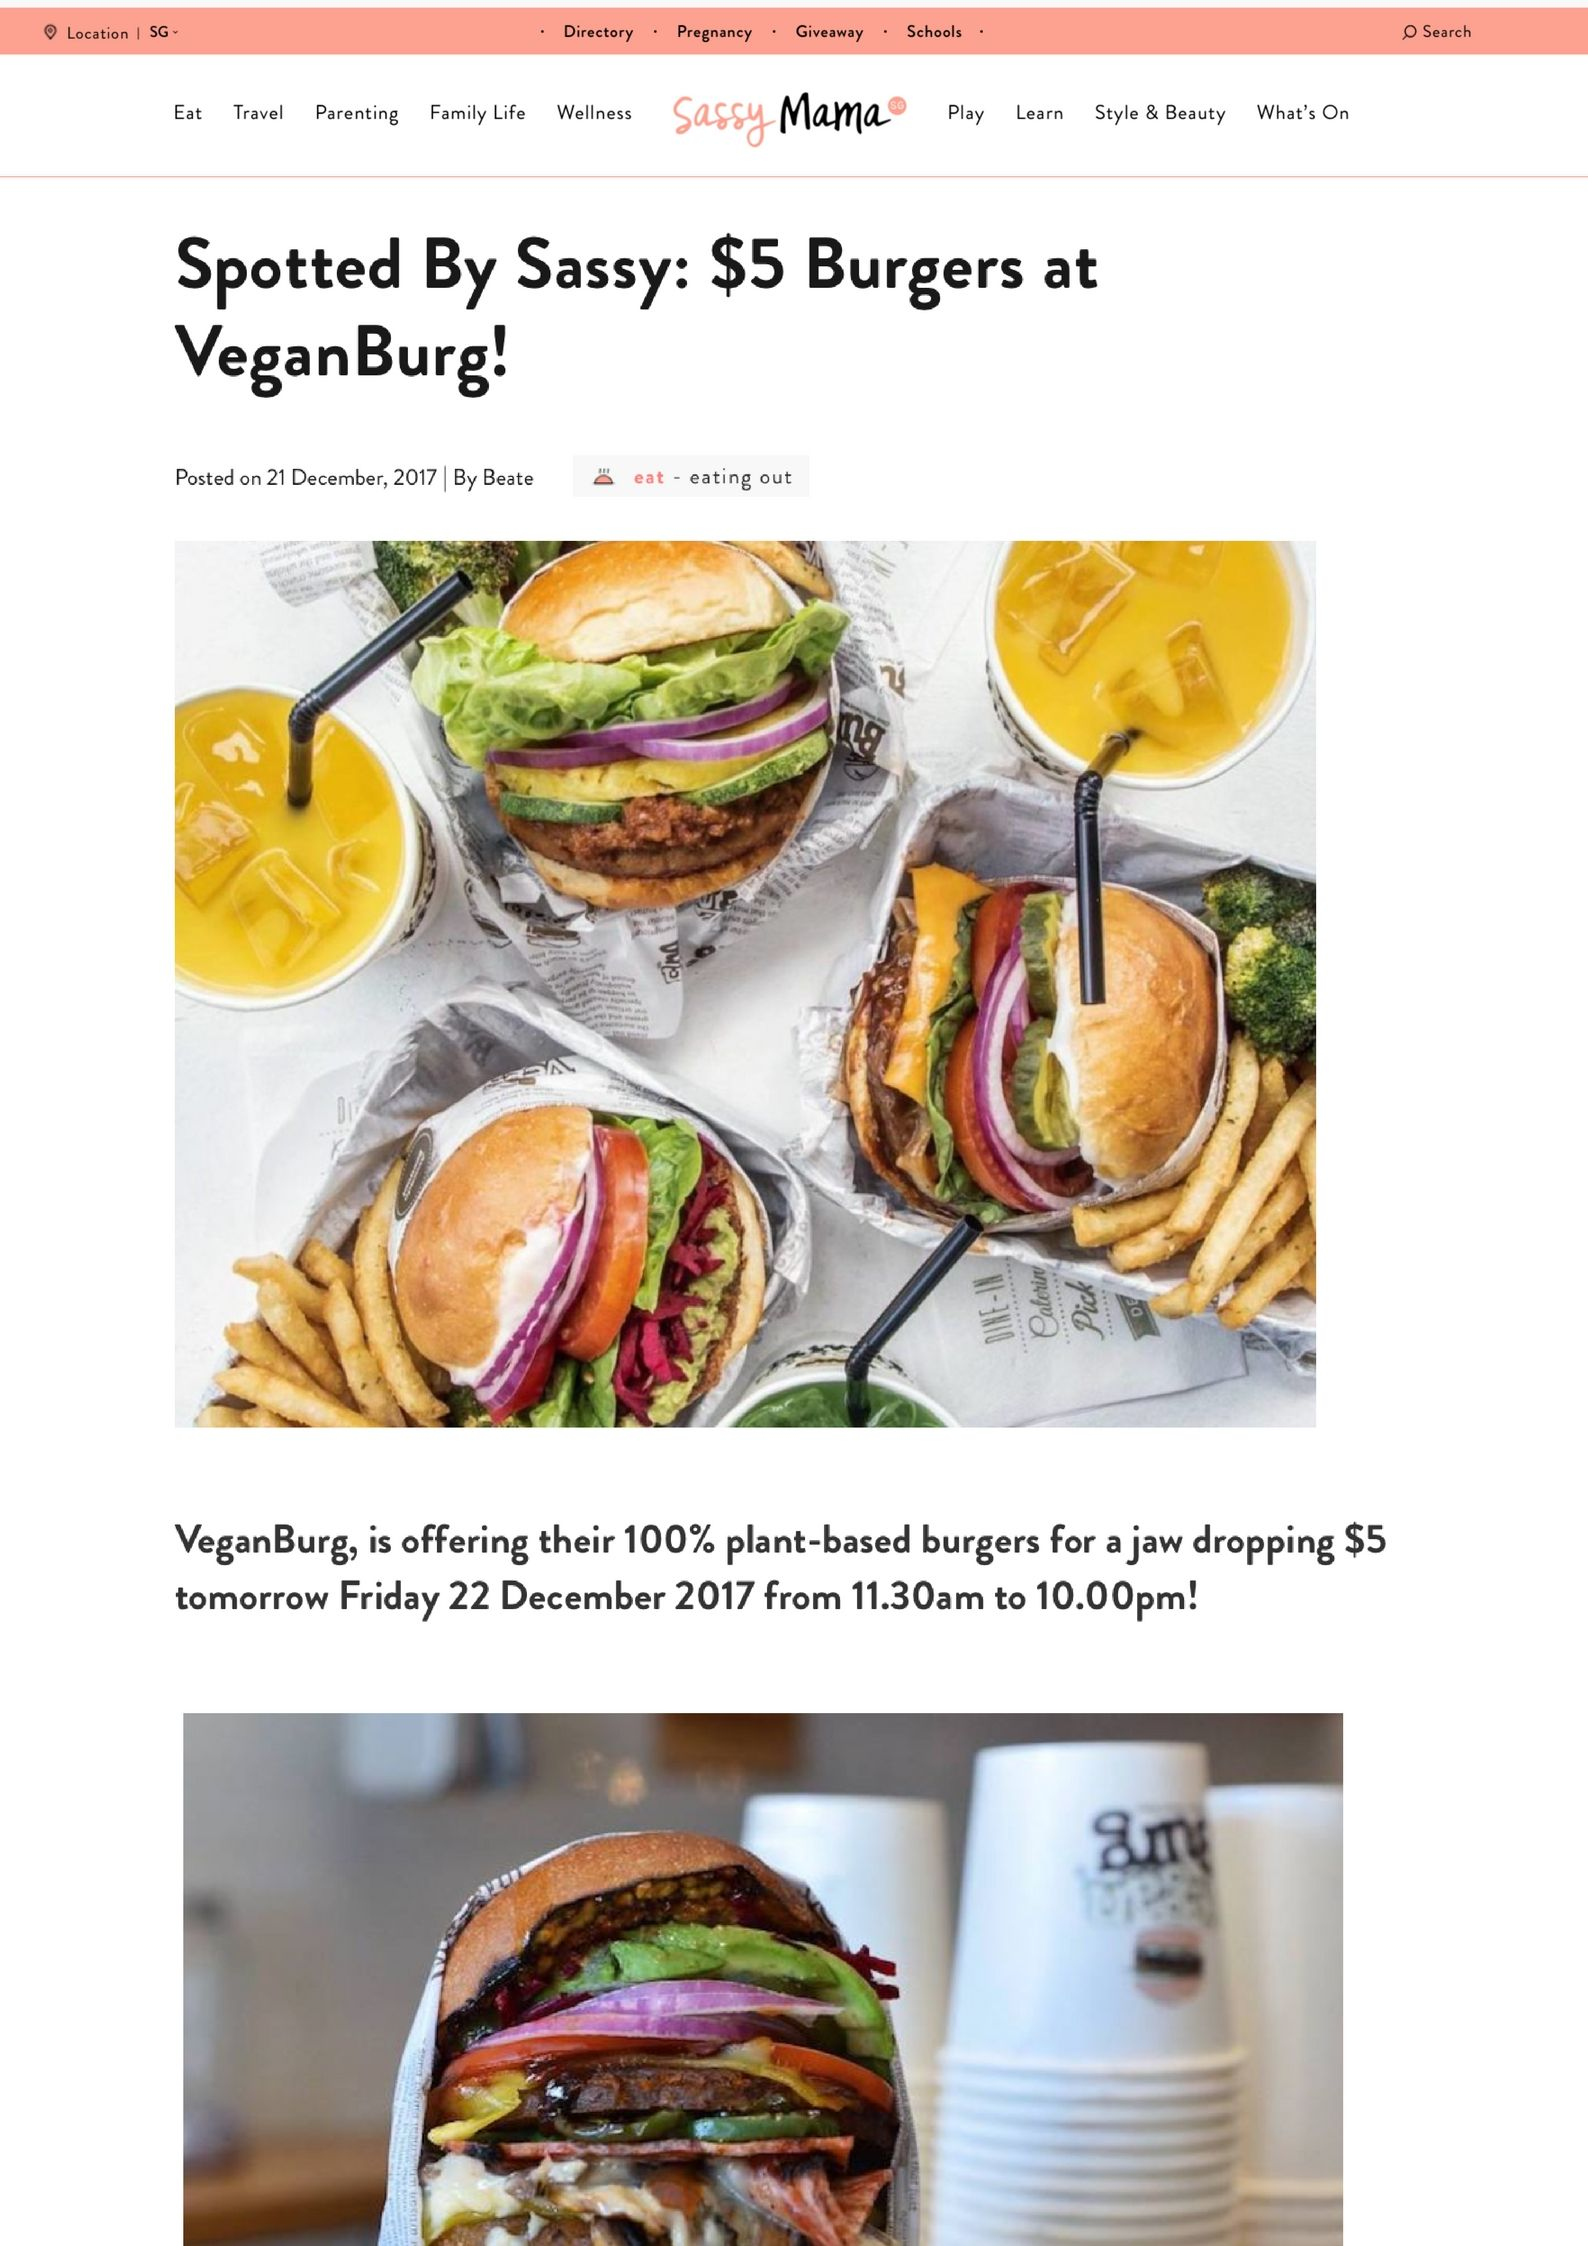 VeganBurg Eunos has a $5 Promo on their 100% plant based burgers this Friday from 1130am - 10pm! We know where we are headed when the munchies hit!.jpg